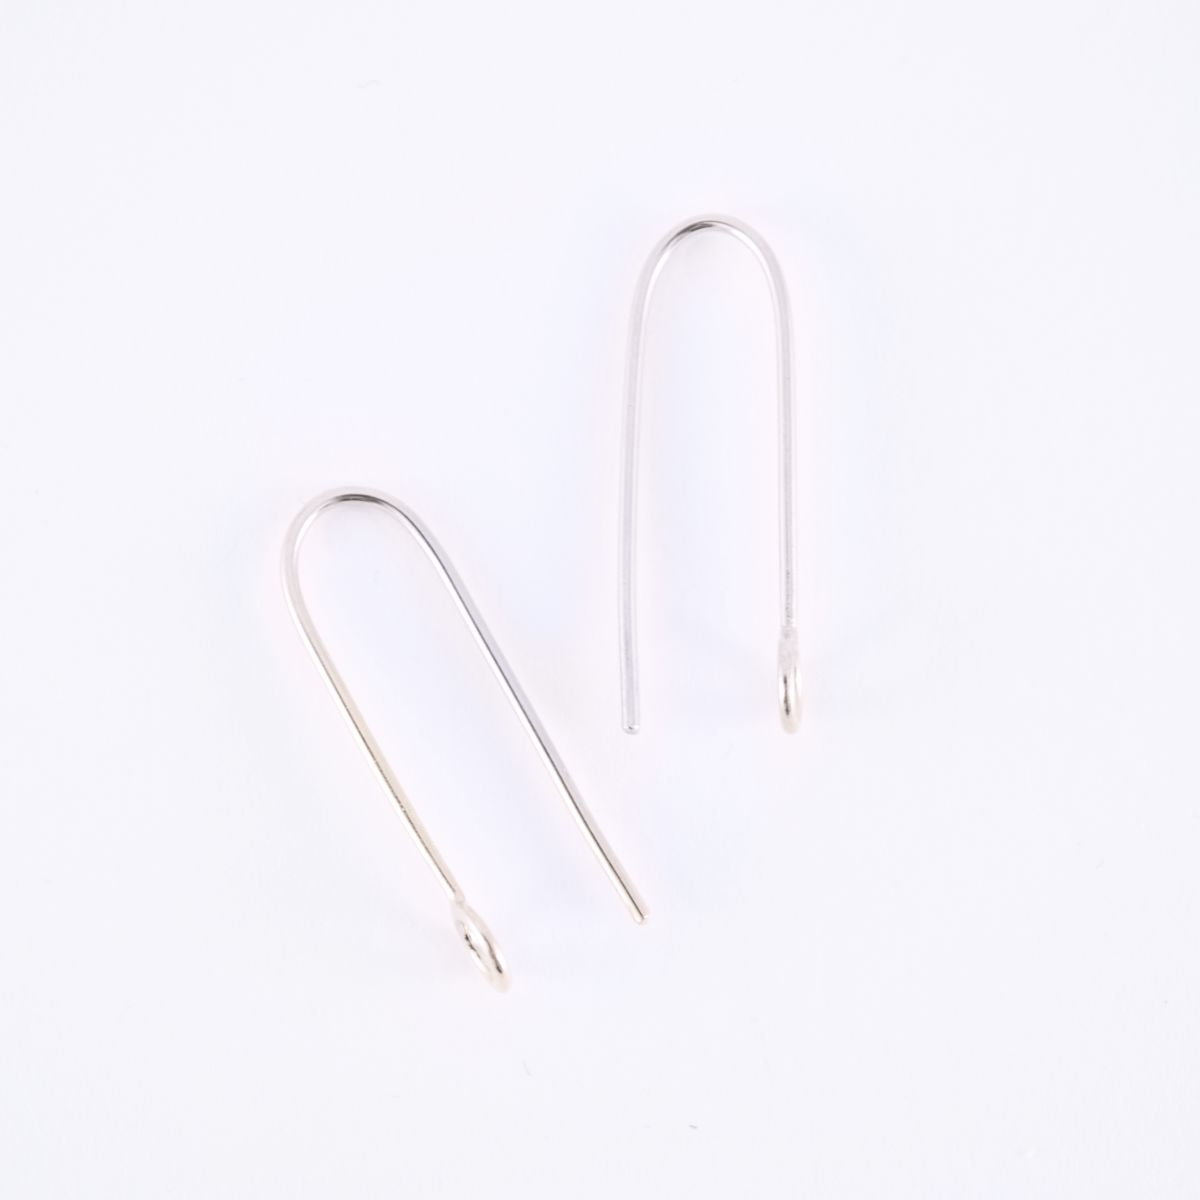 rg-silver-line-earrings